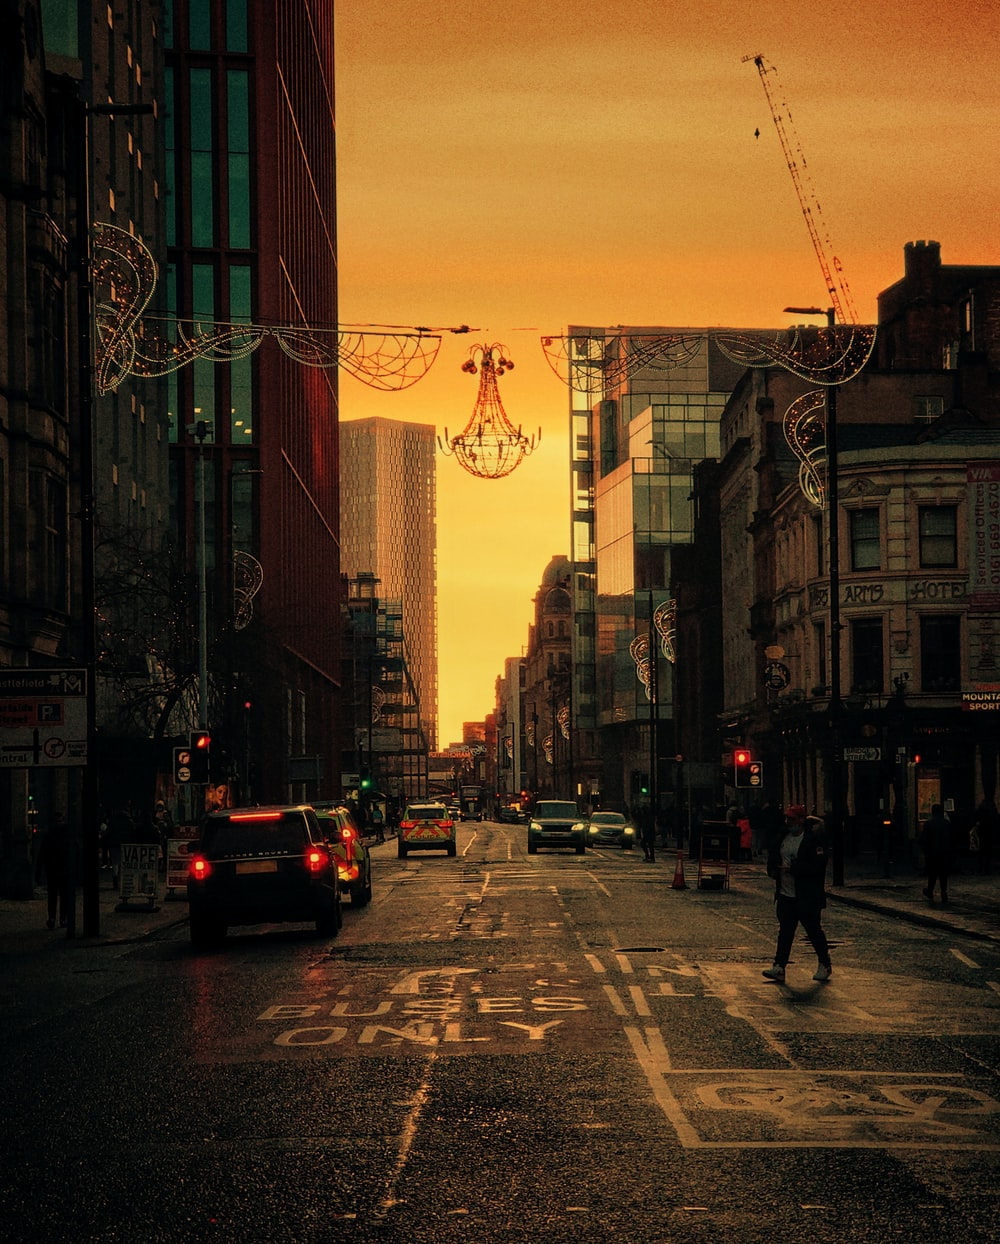 cars on road near buildings during sunset